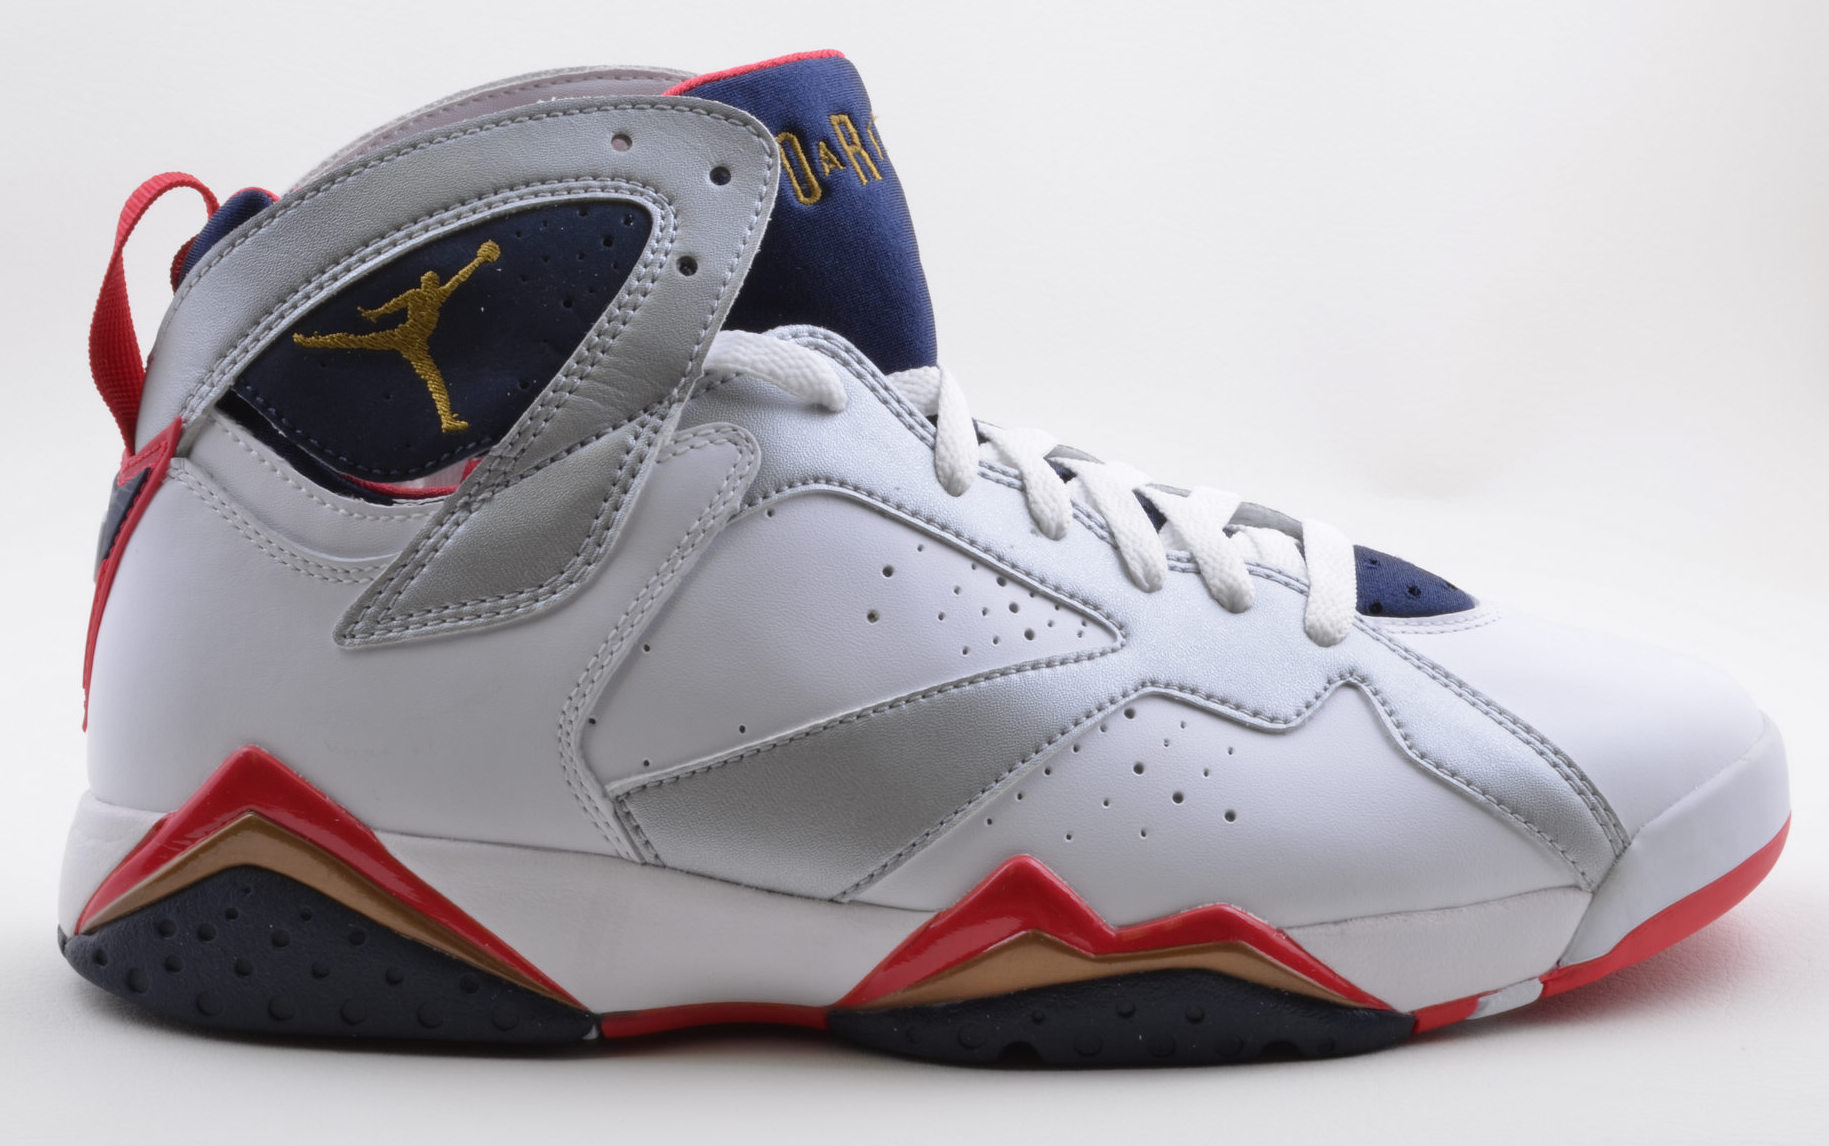 Images Of 7s